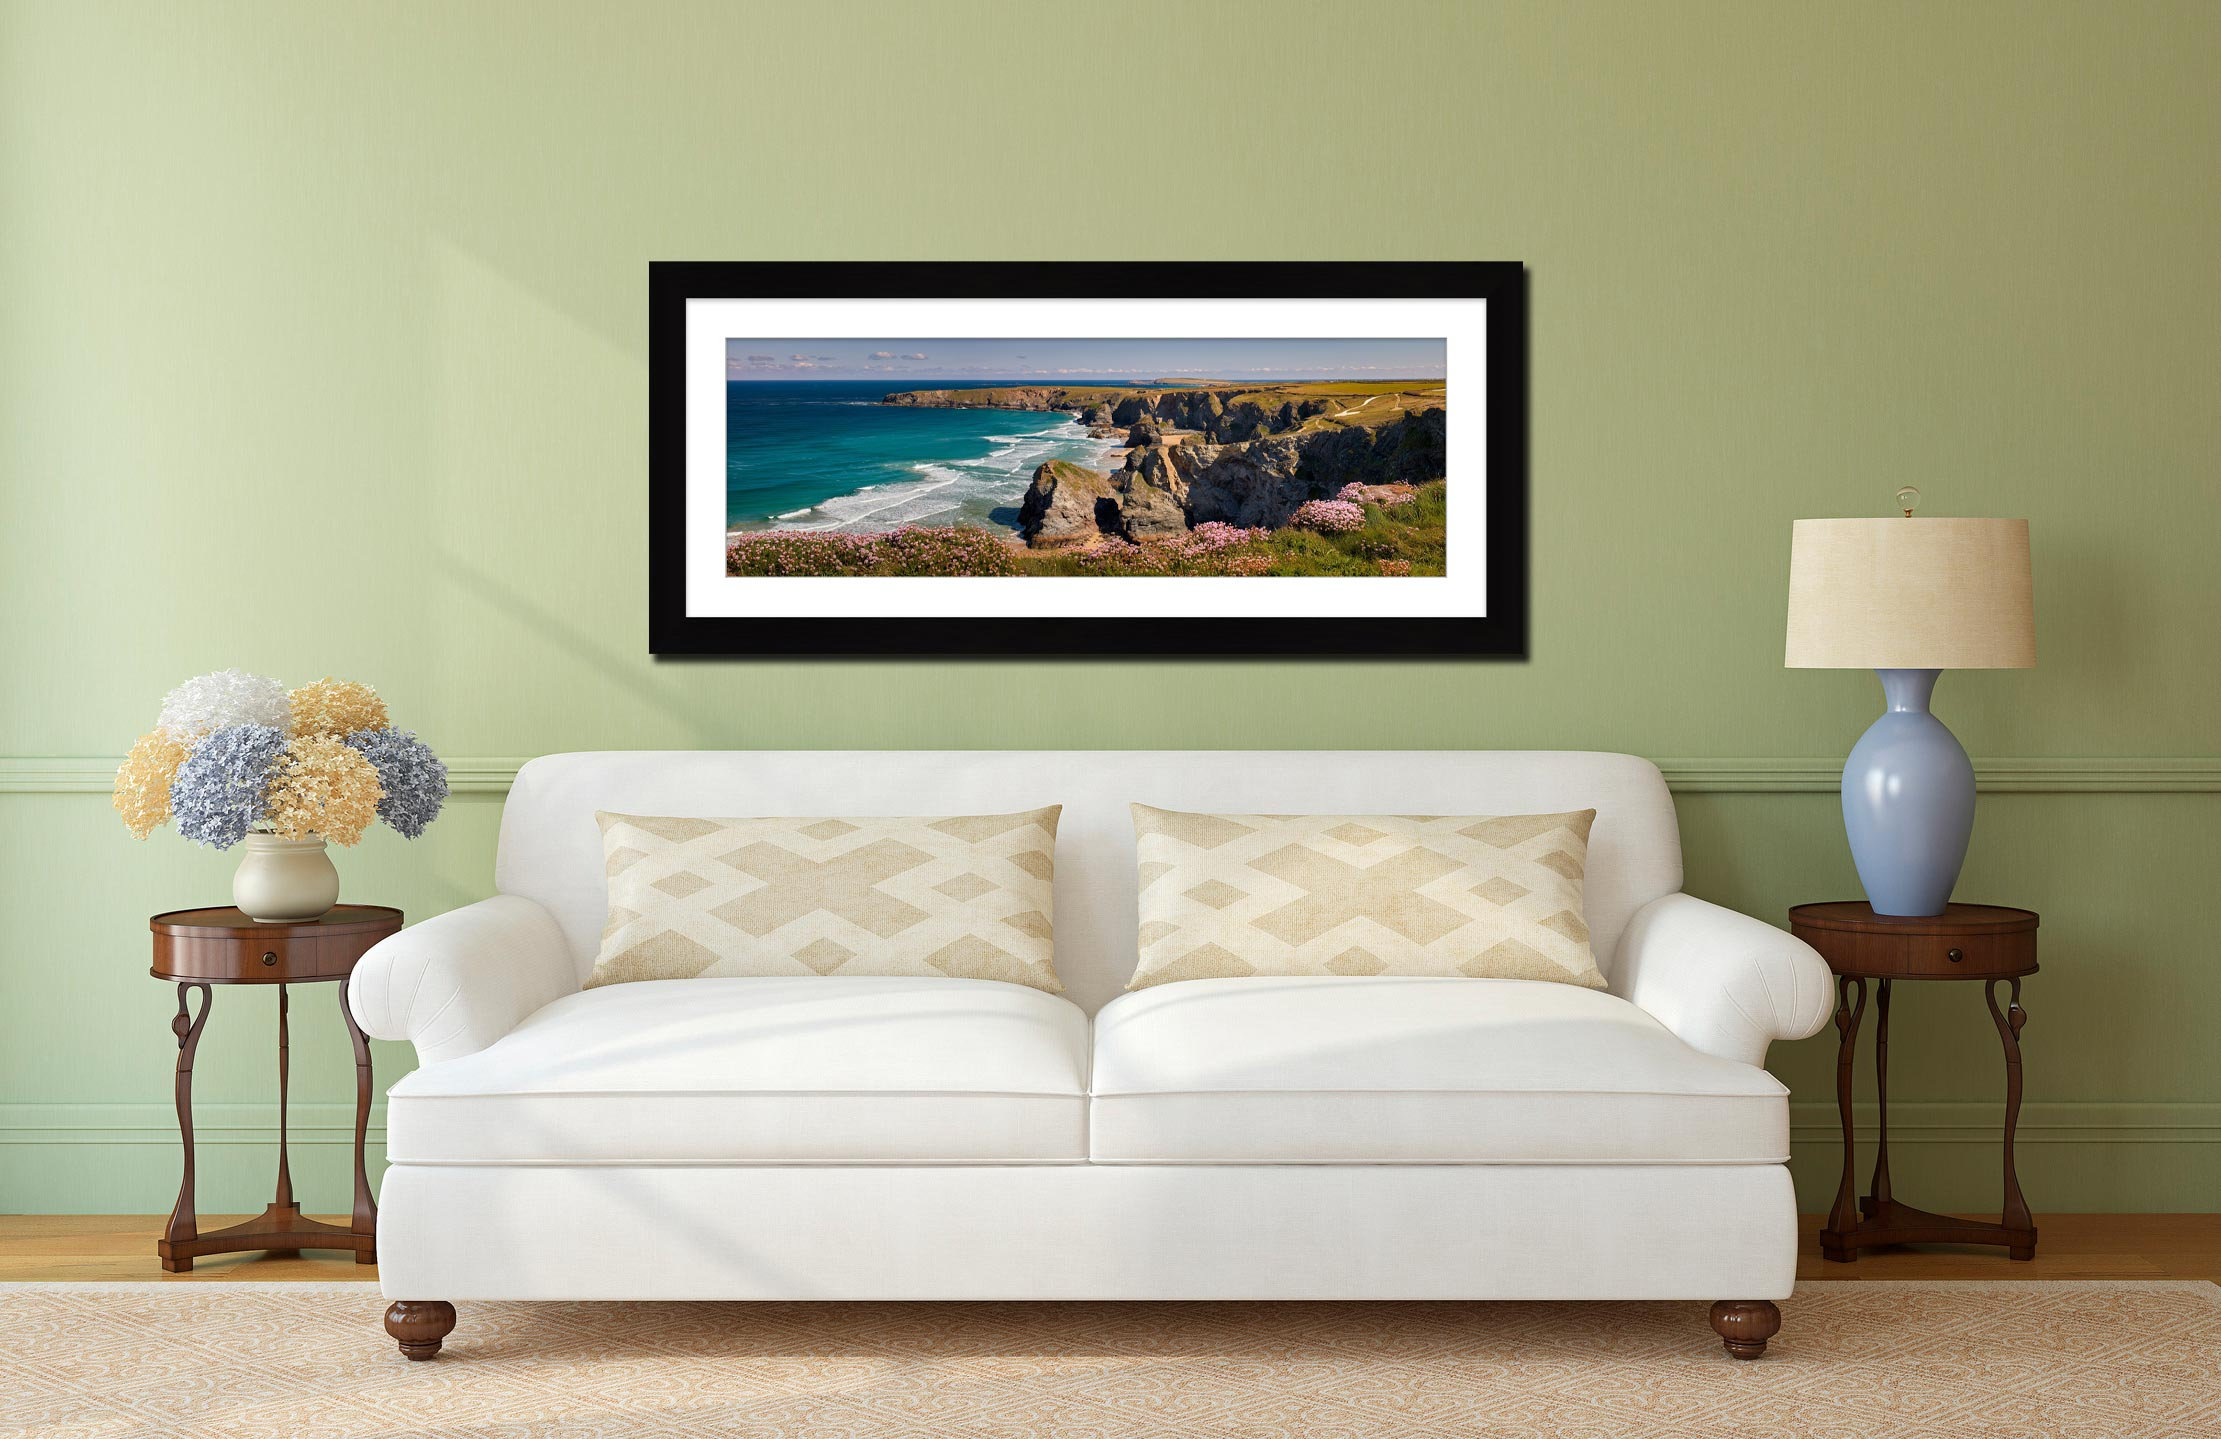 Spring Sunshine Bedruthan Steps - Framed Print with Mount on Wall